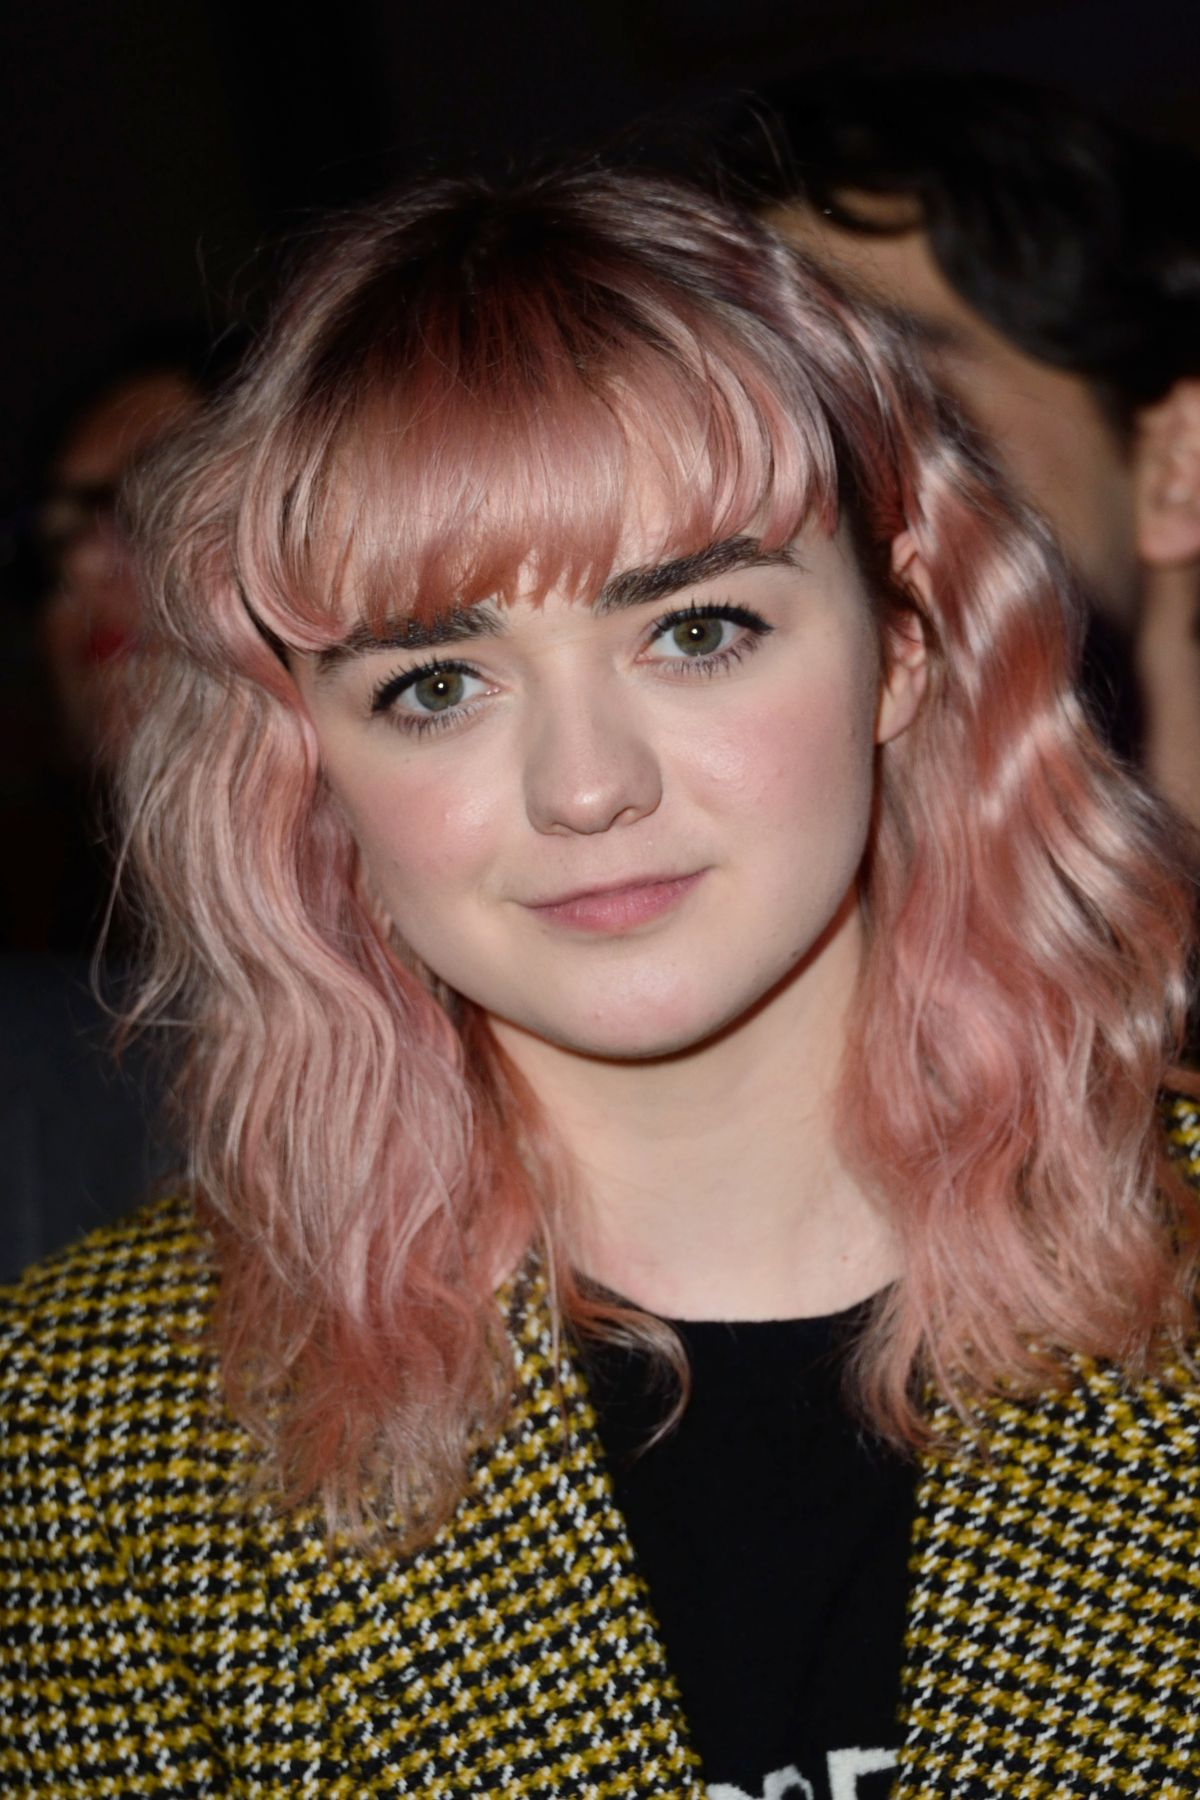 Maisie Williams At Paul Smith Fashion Show In Paris 01 20